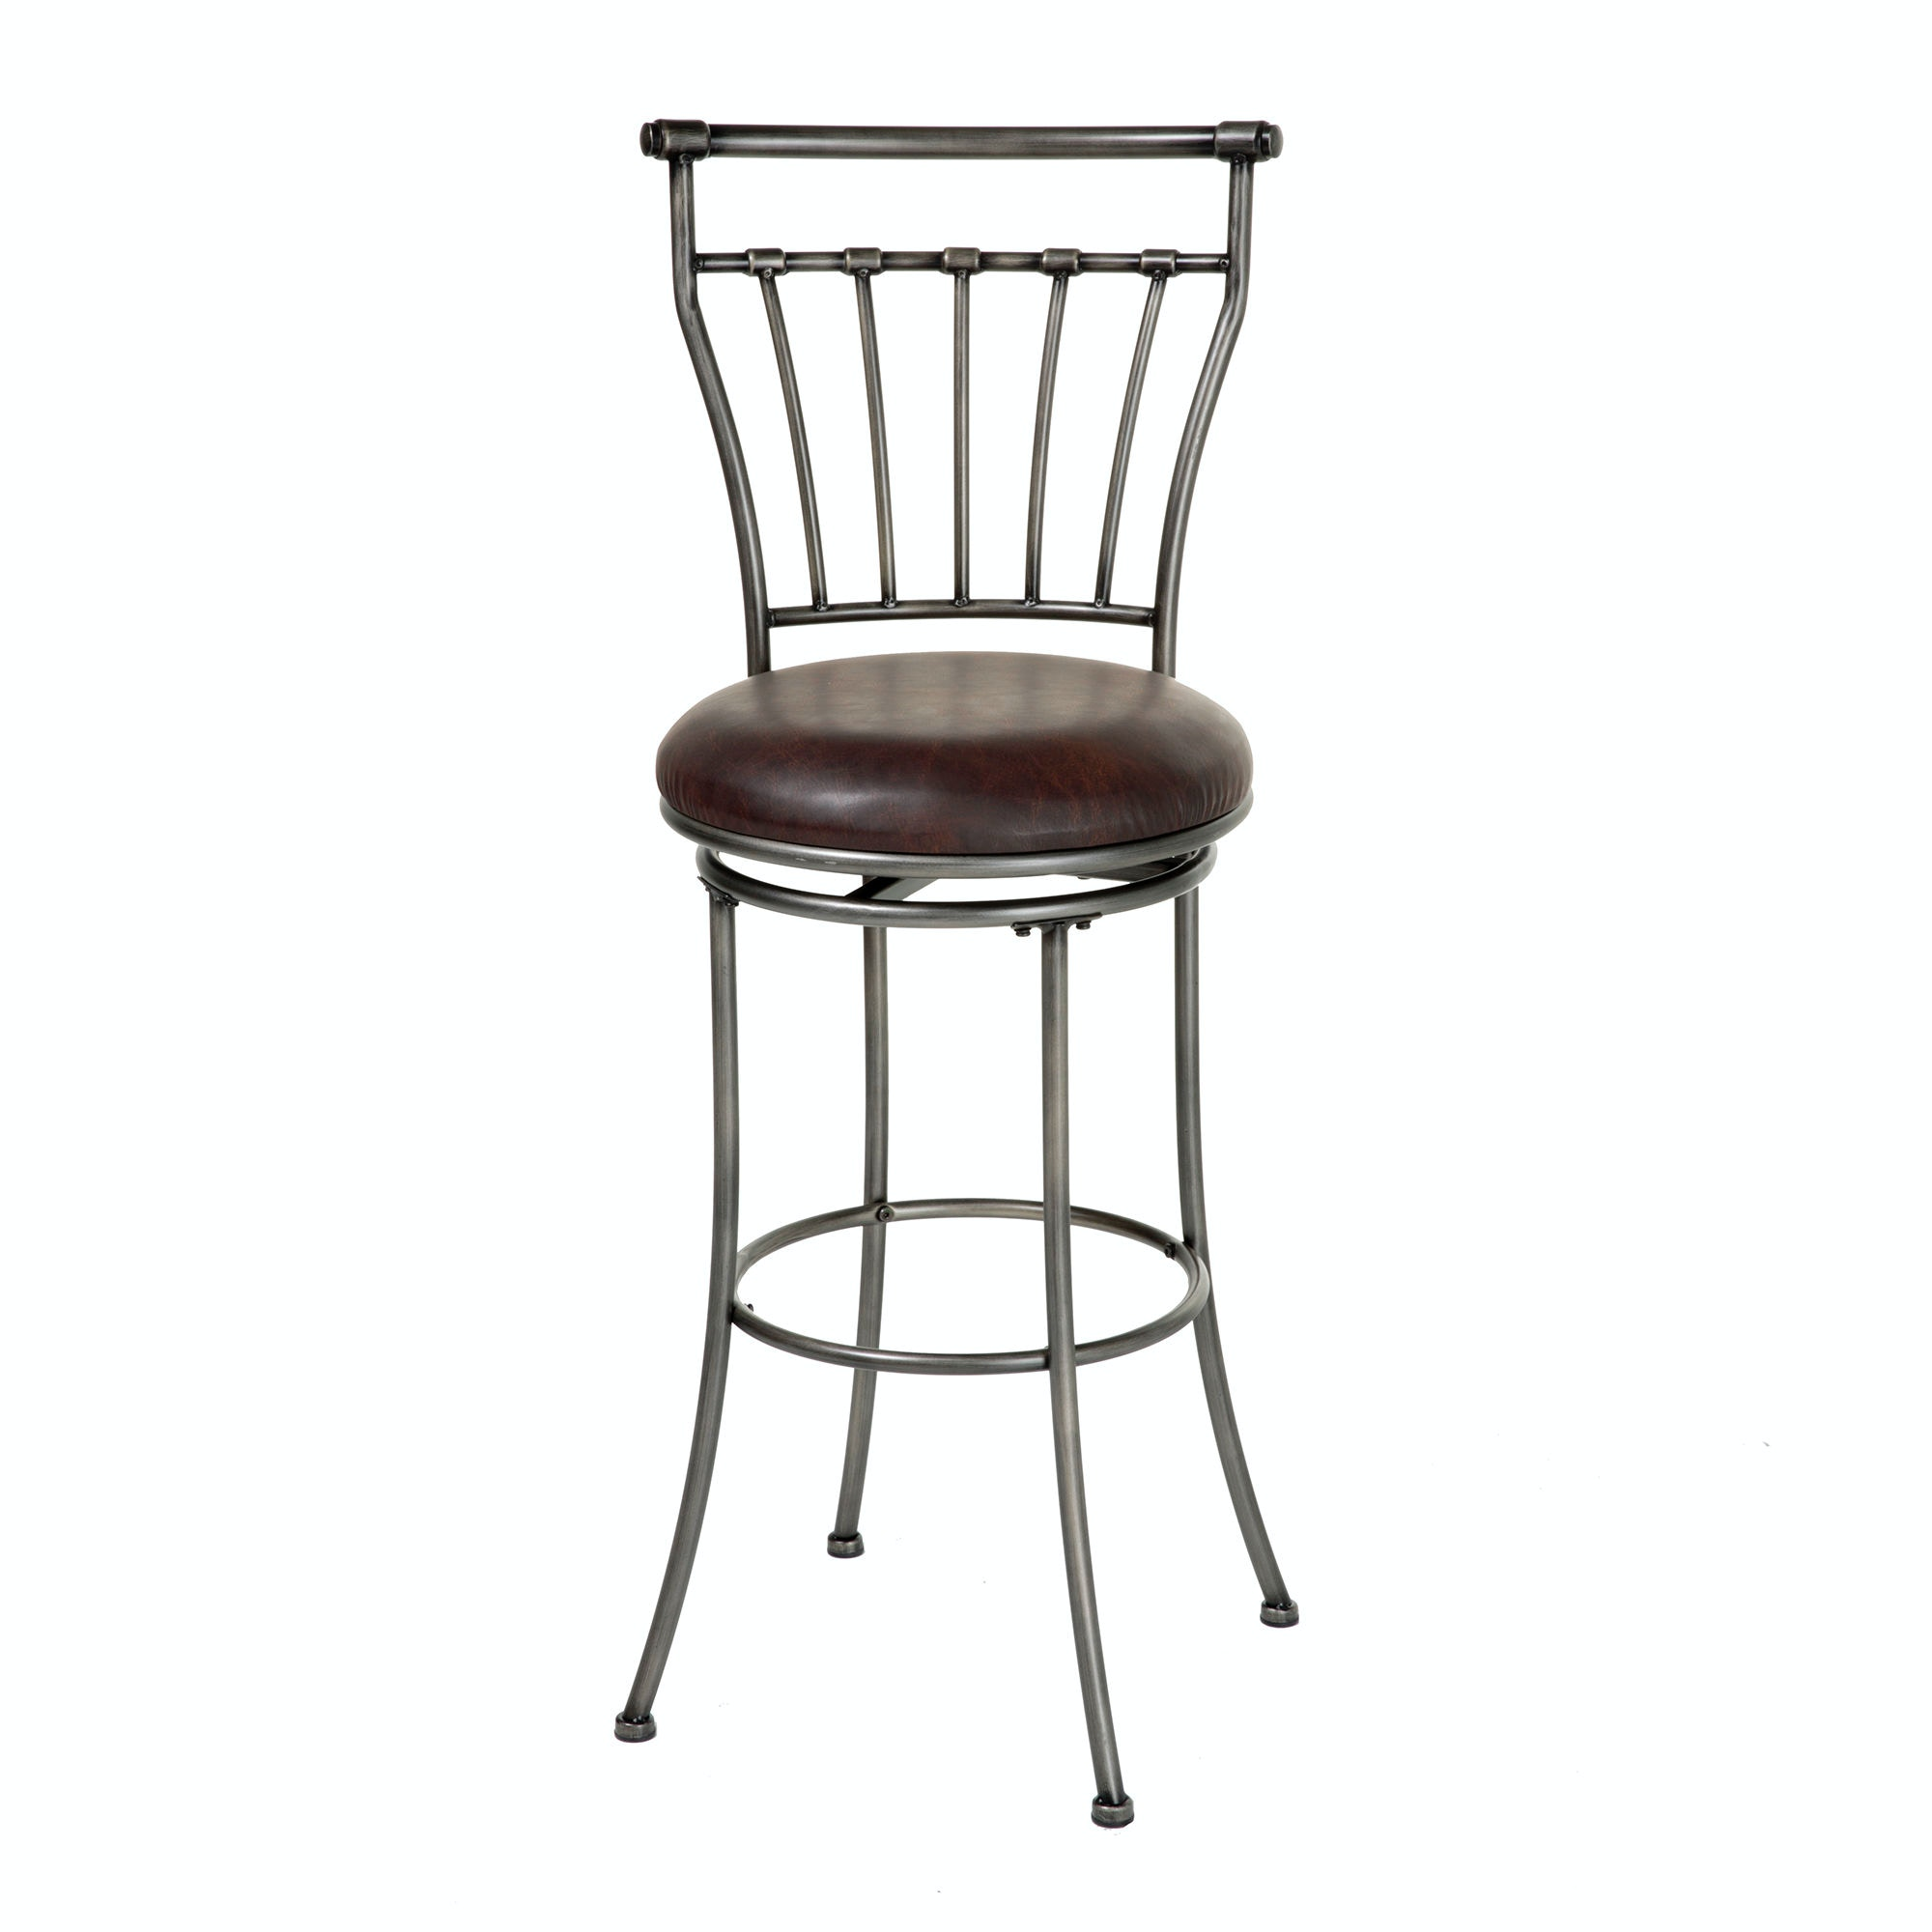 Fashion Bed Group Bar And Game Room Topeka Swivel Seat Counter Stool